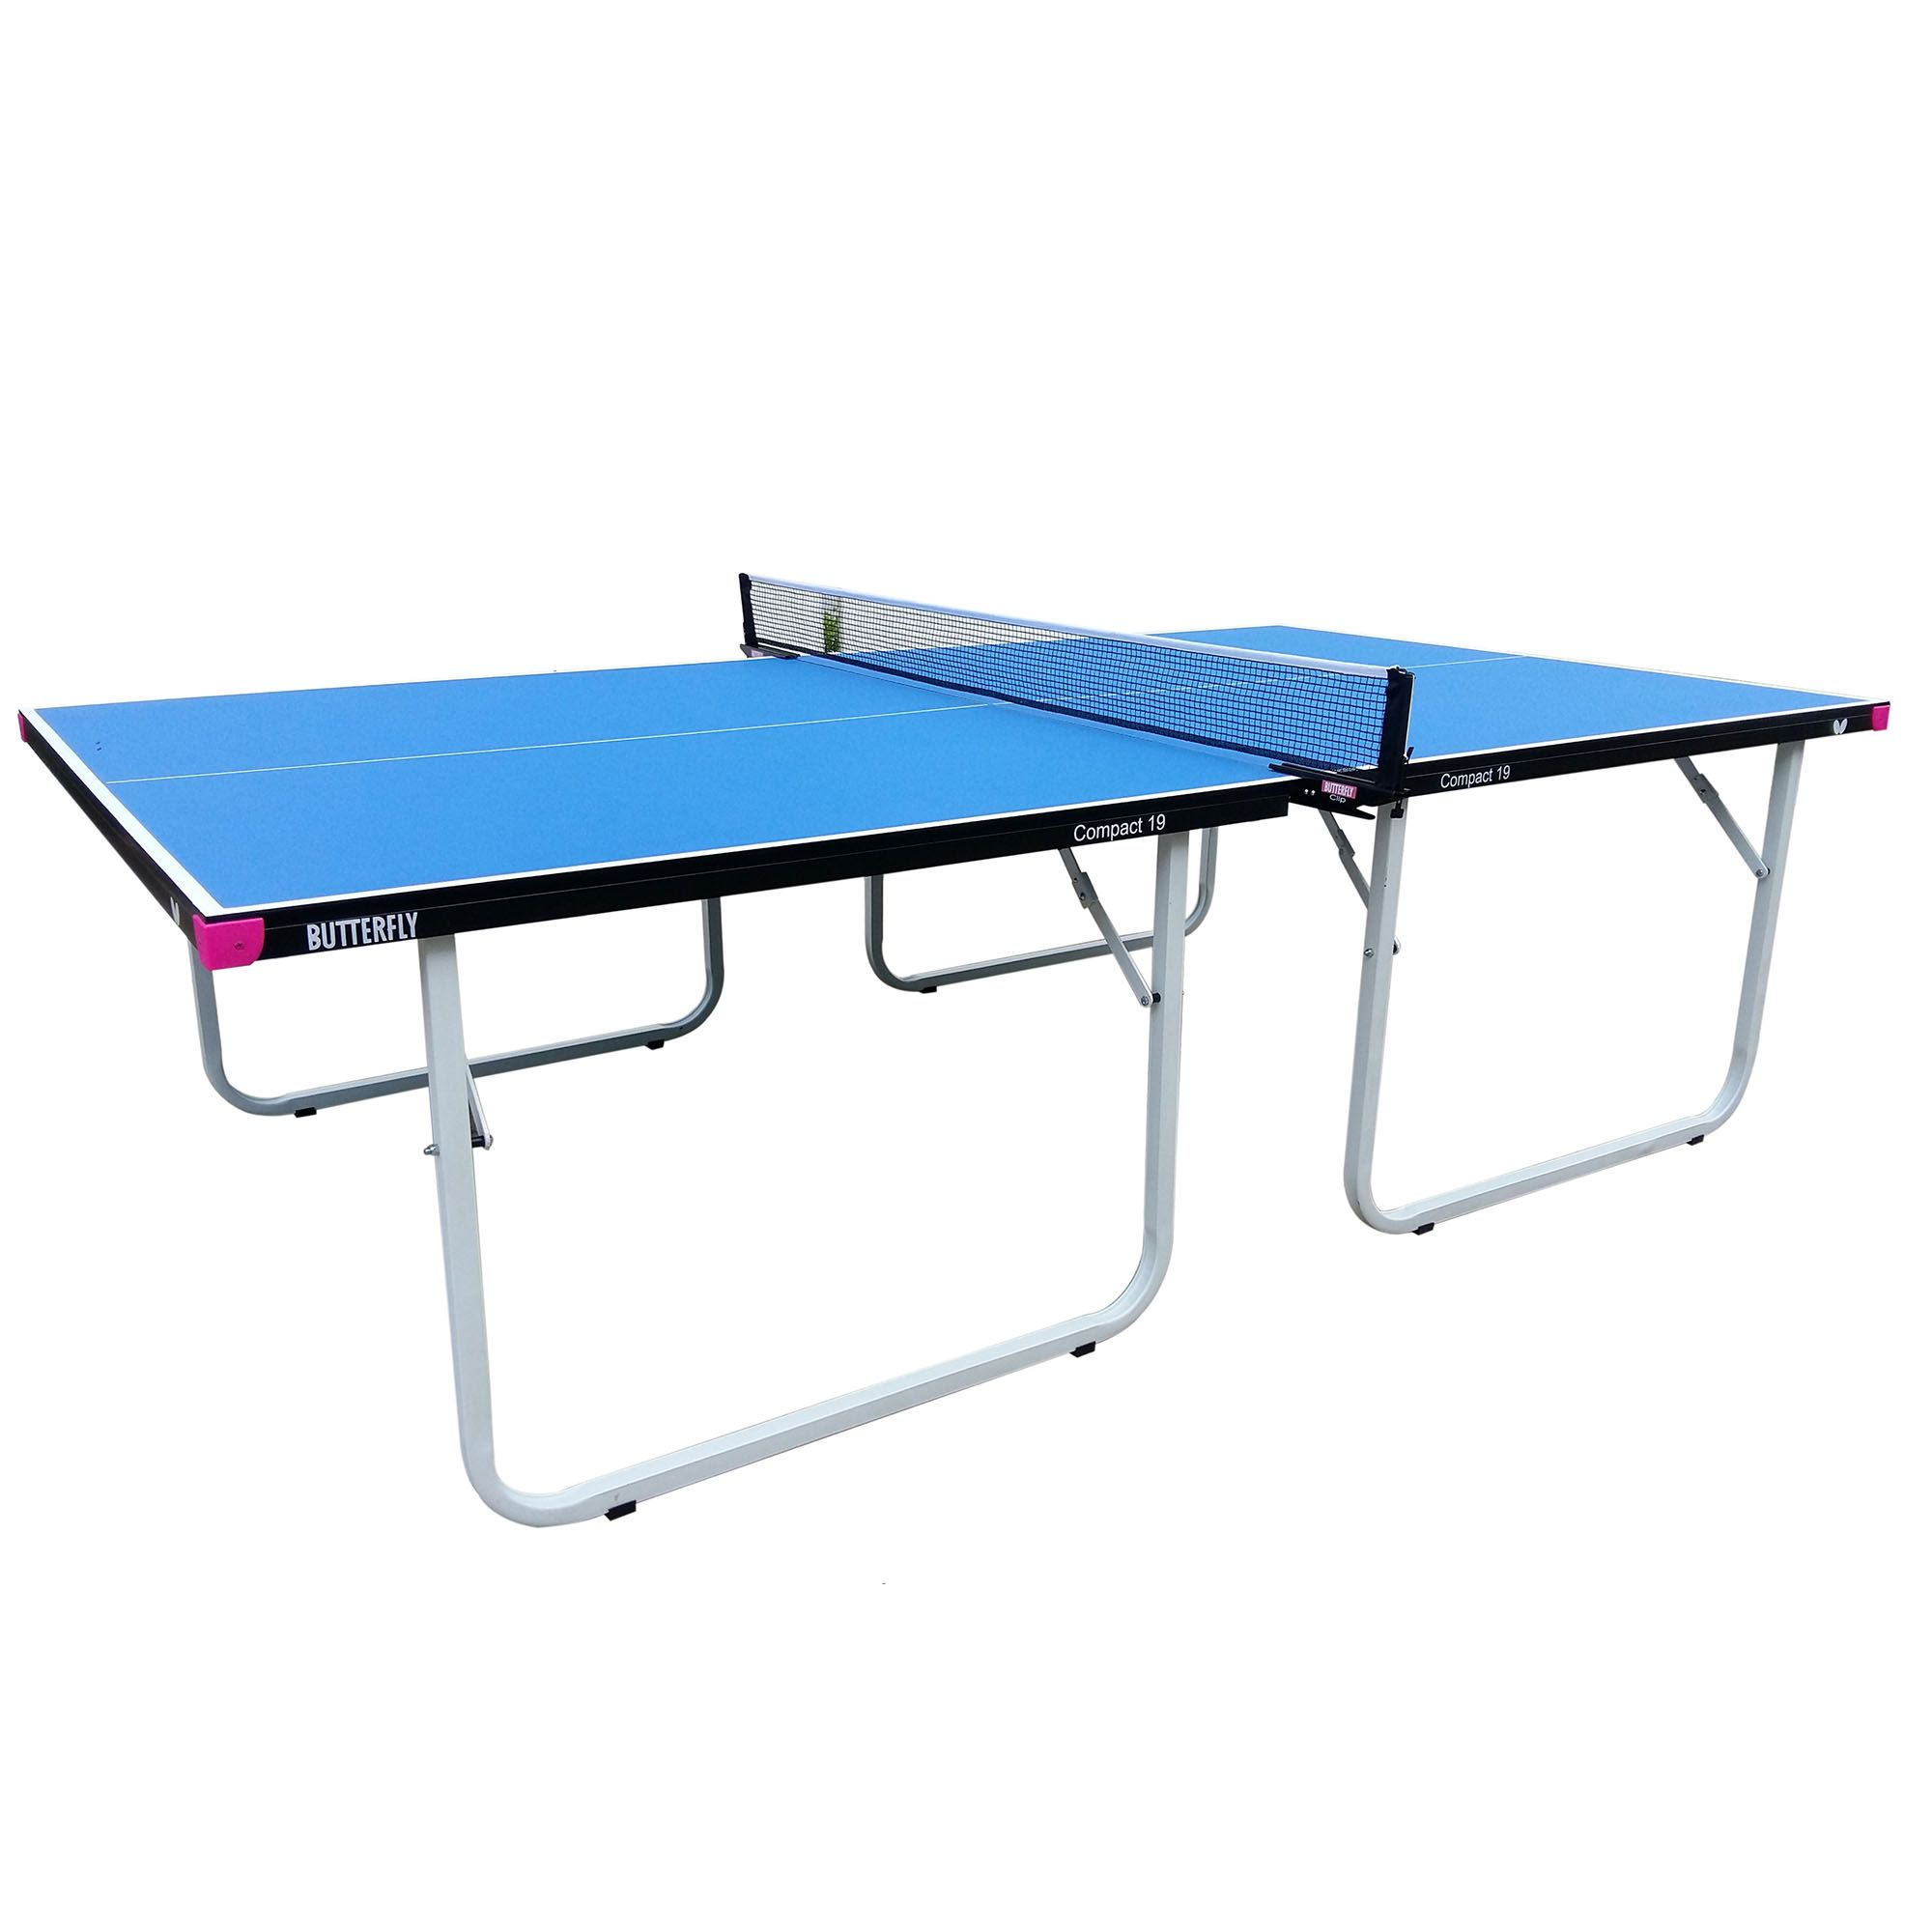 The Stiga STS (Stiga Tournament Series) Ping Pong table, is a fantastic table tennis table for the home, office or a community center, for players that want to have a quality table for recreational purposes and don't want to spend a fortune.